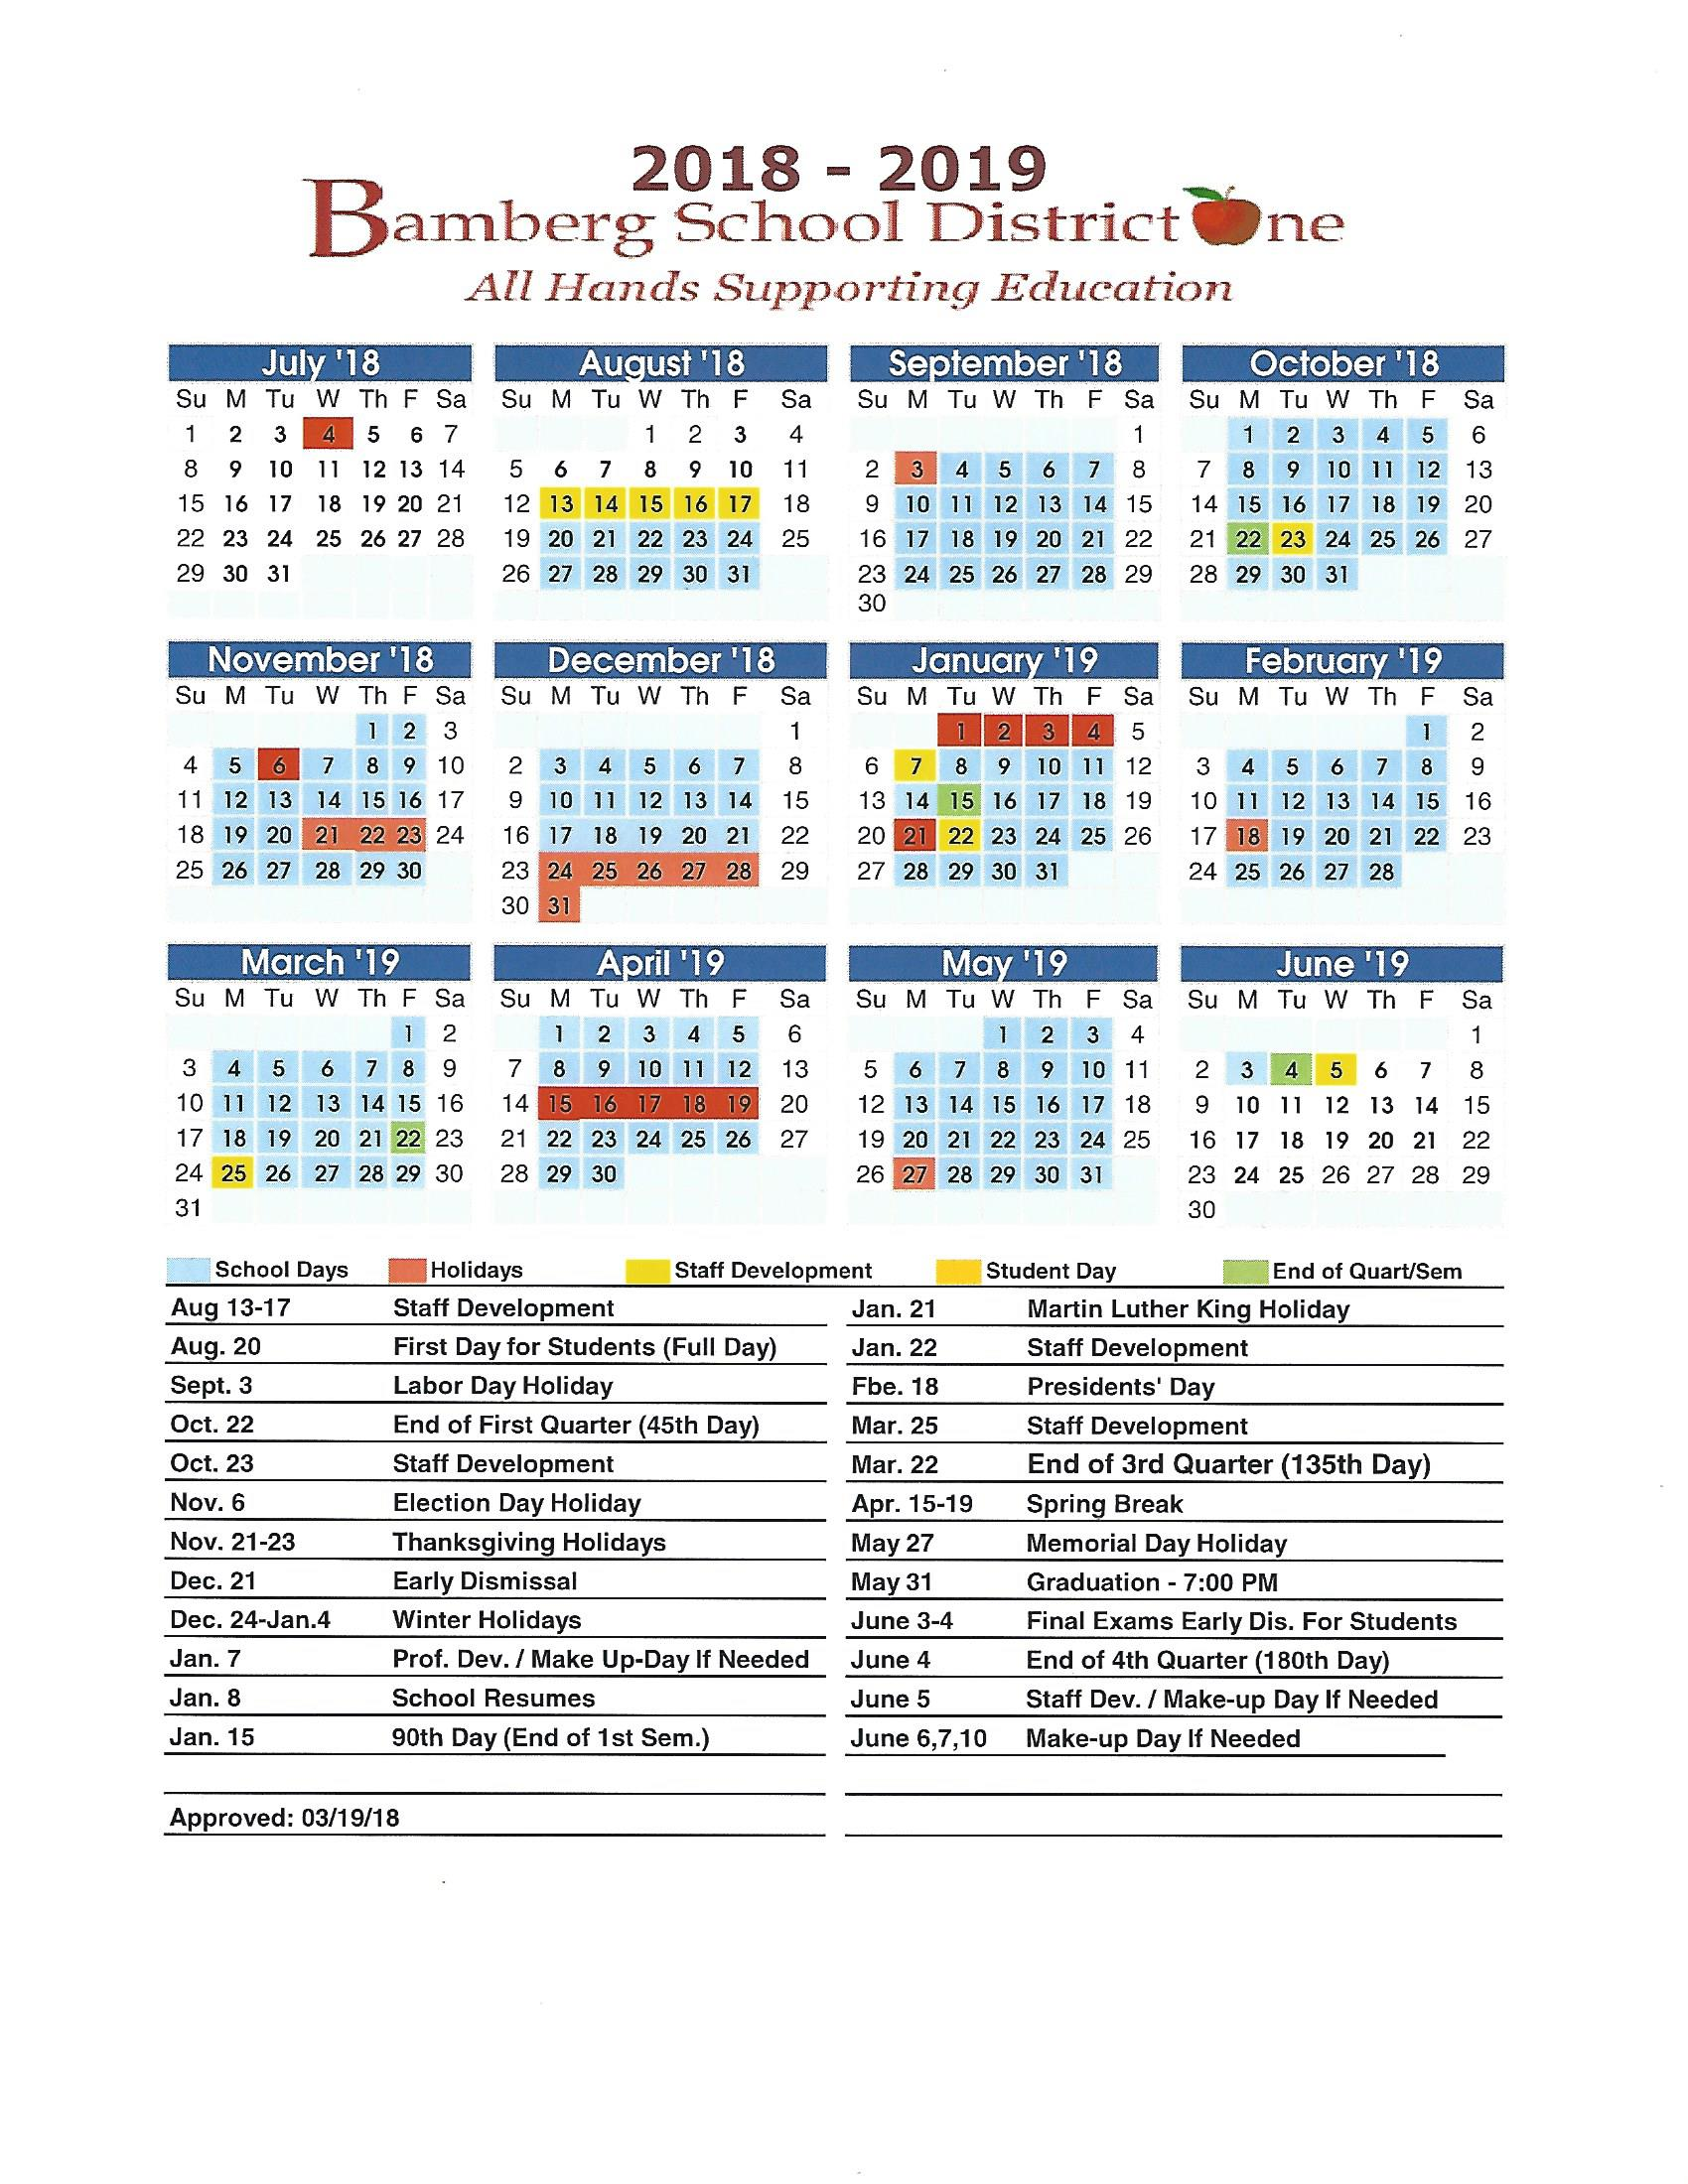 Bamberg School District One Calendar 2018-2019